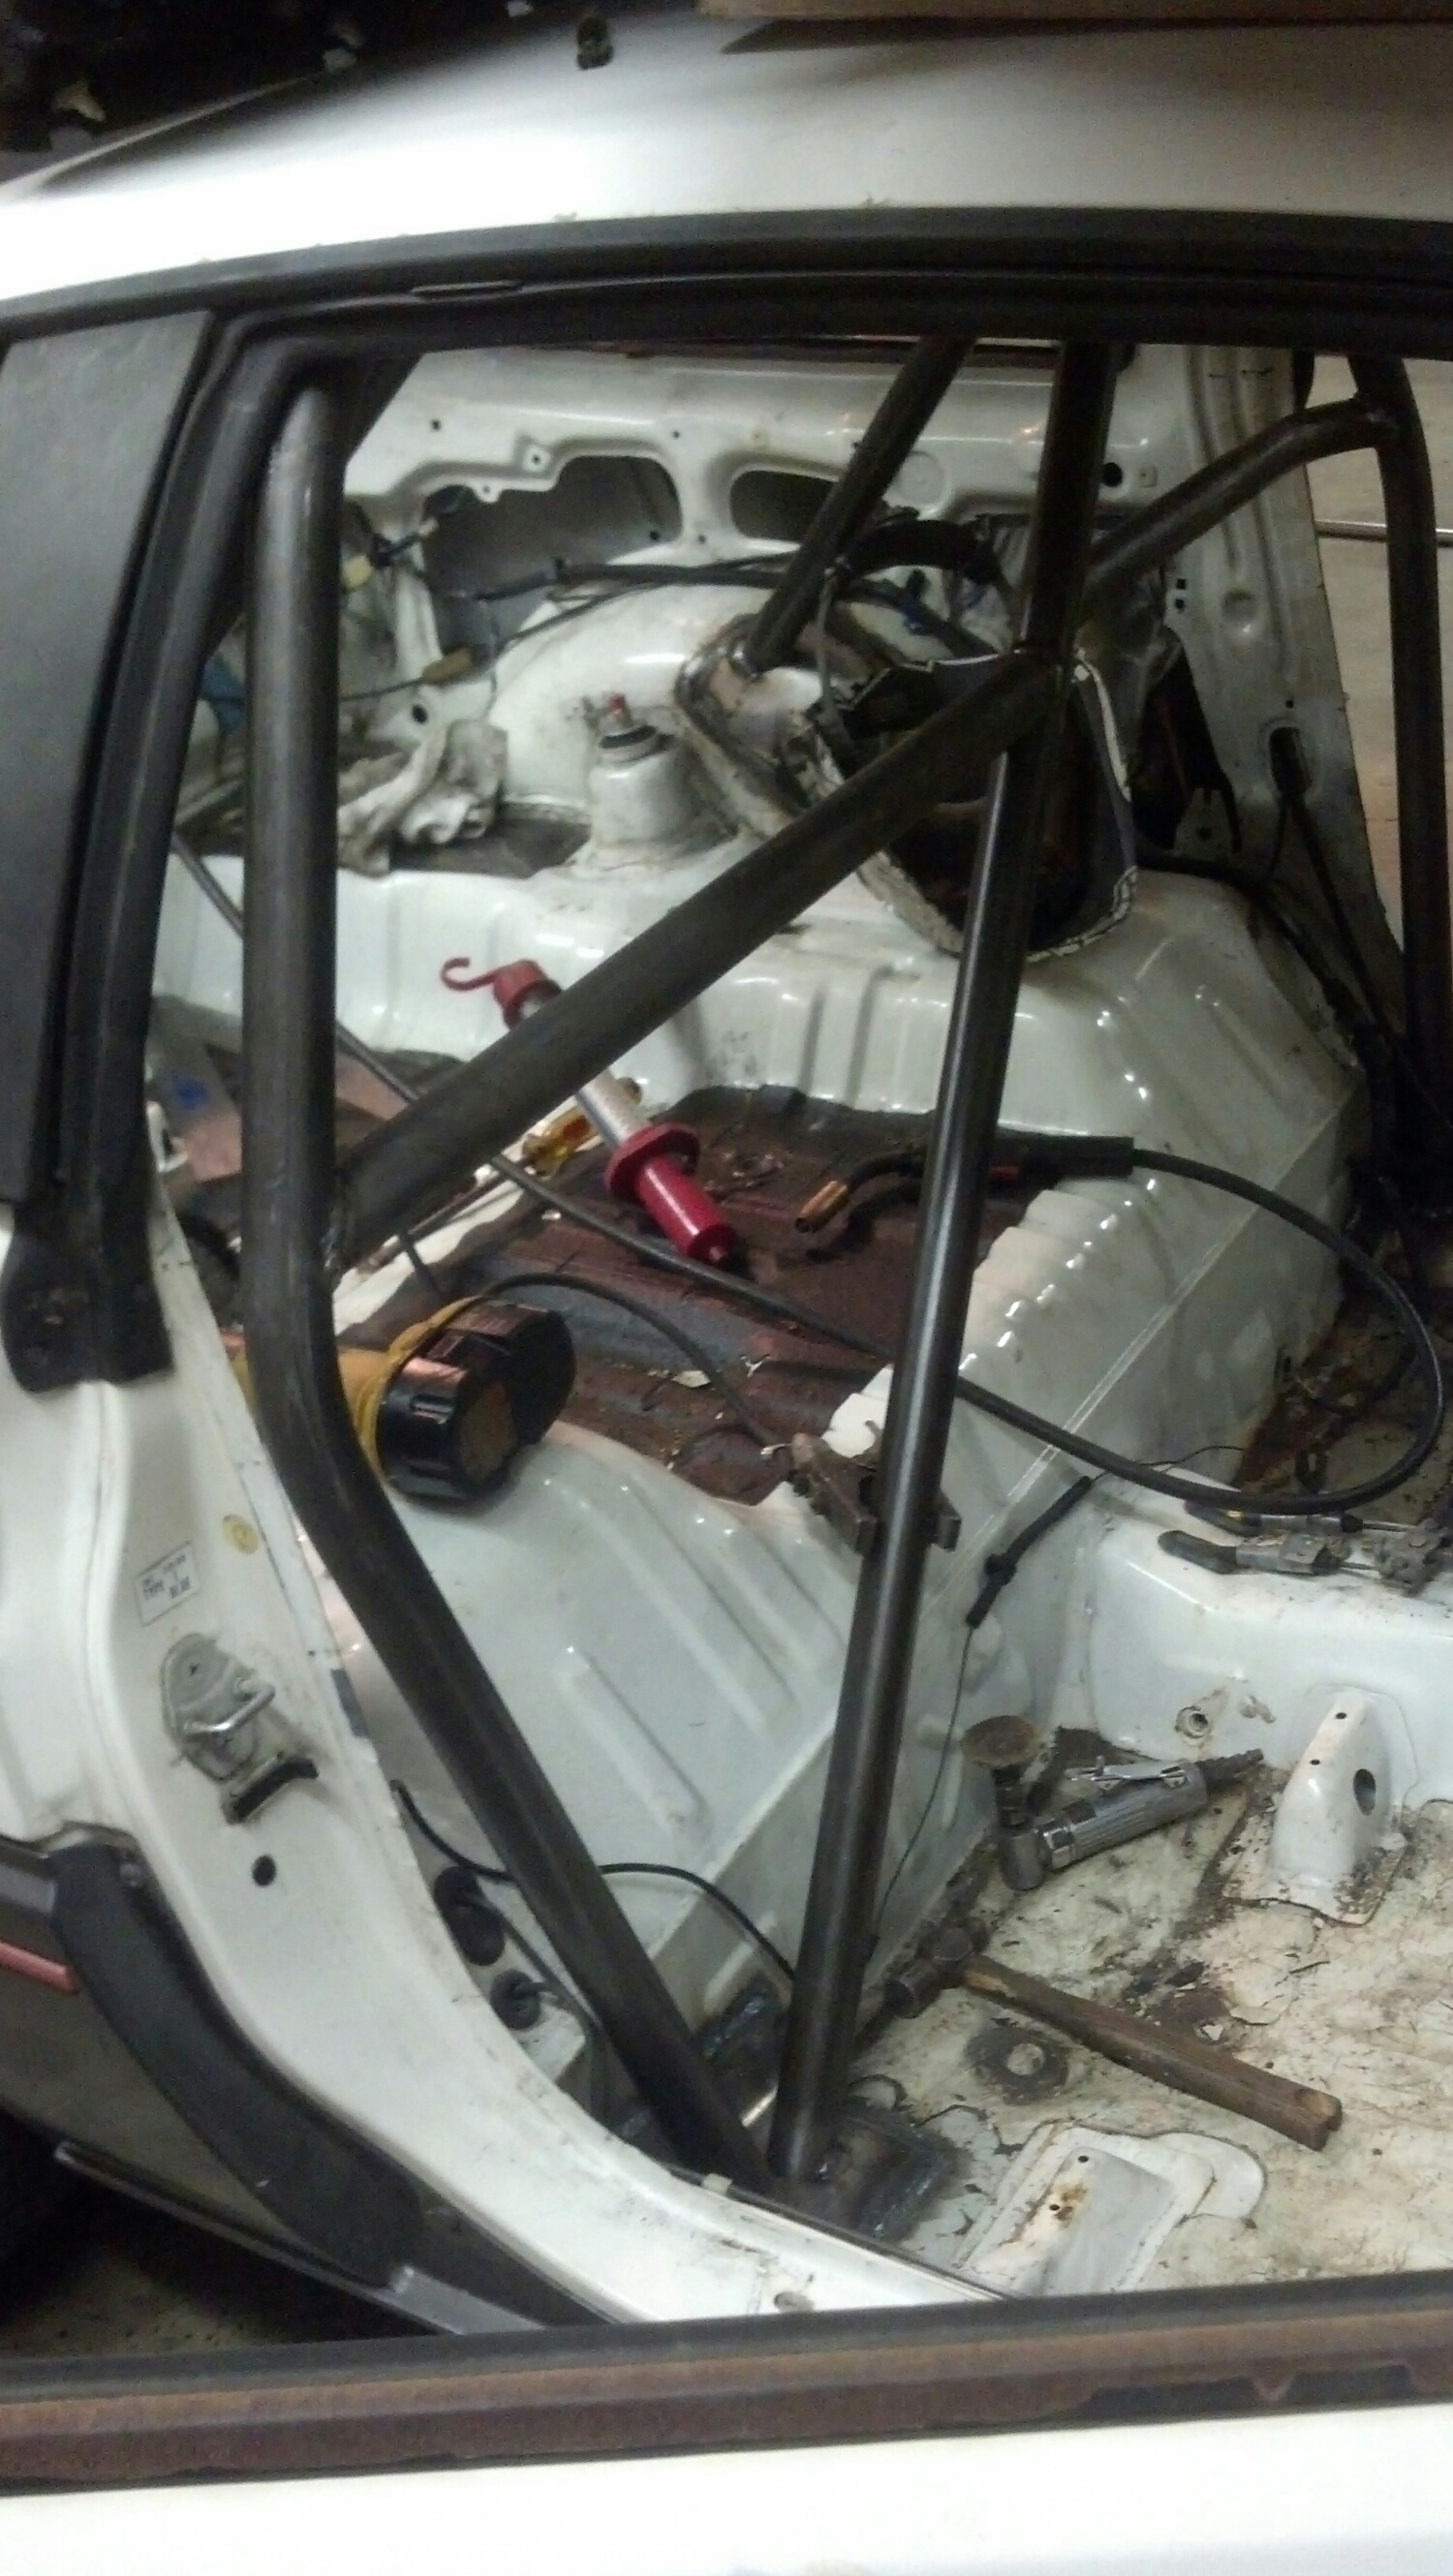 maximum hoop width was a goal of mine on this 1g crx track car it almost hits the glass, and only works with a gutted door